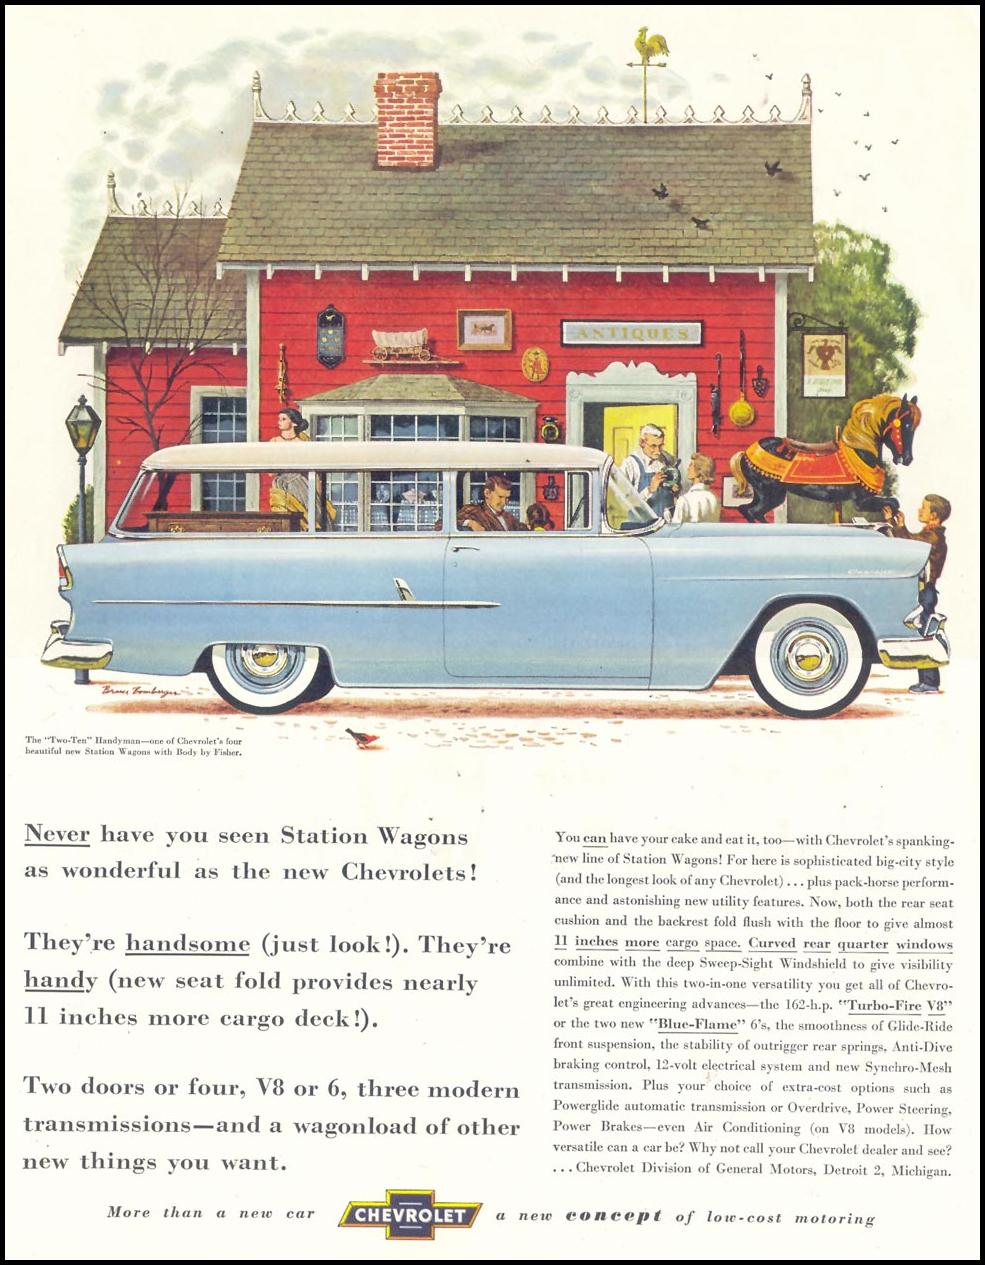 CHEVROLET AUTOMOBILES SATURDAY EVENING POST 02/05/1955